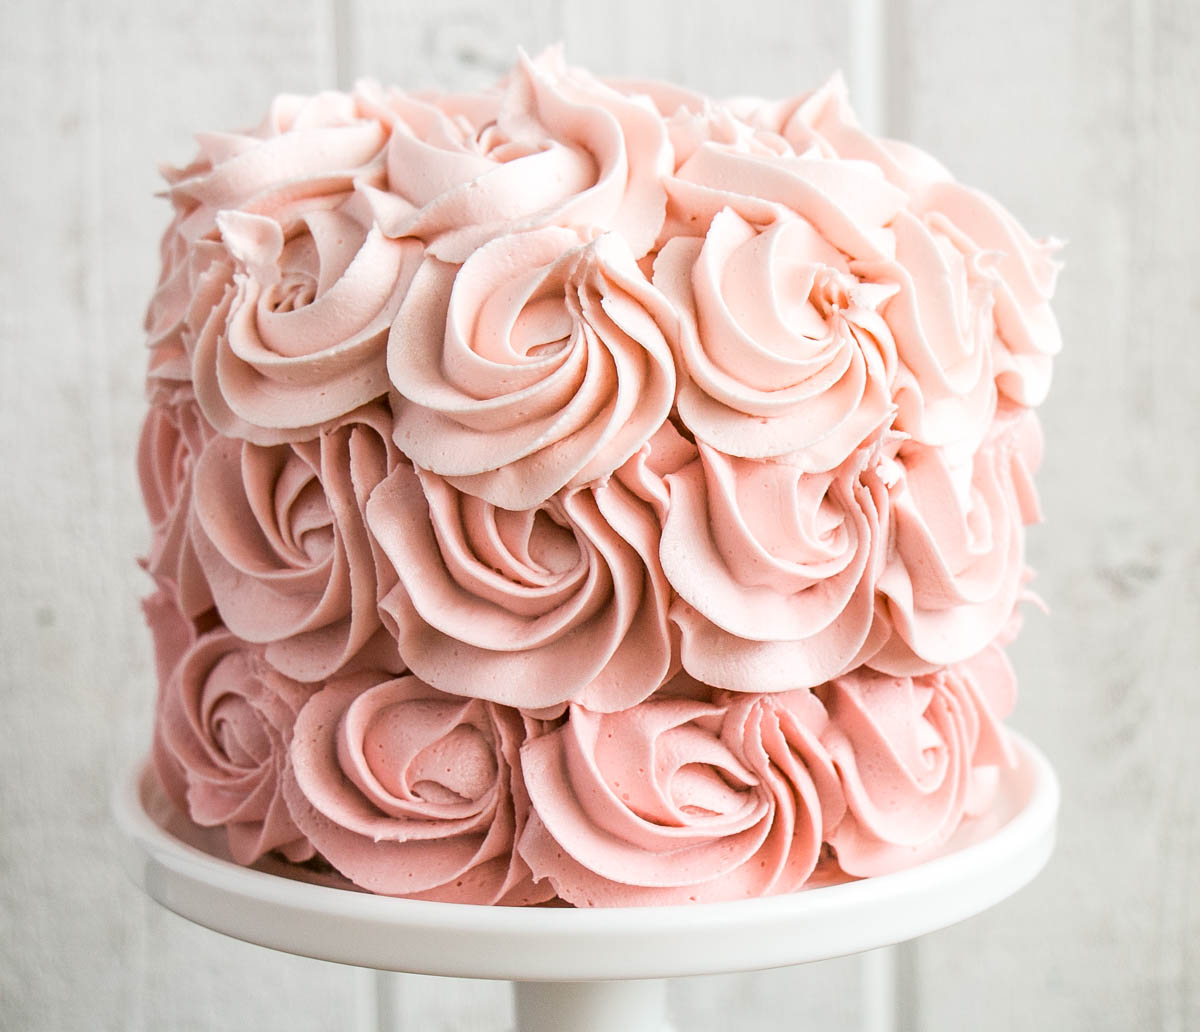 Tips on how to make an Ombré Rosette Cake (easily!). #cake #cakedecorating